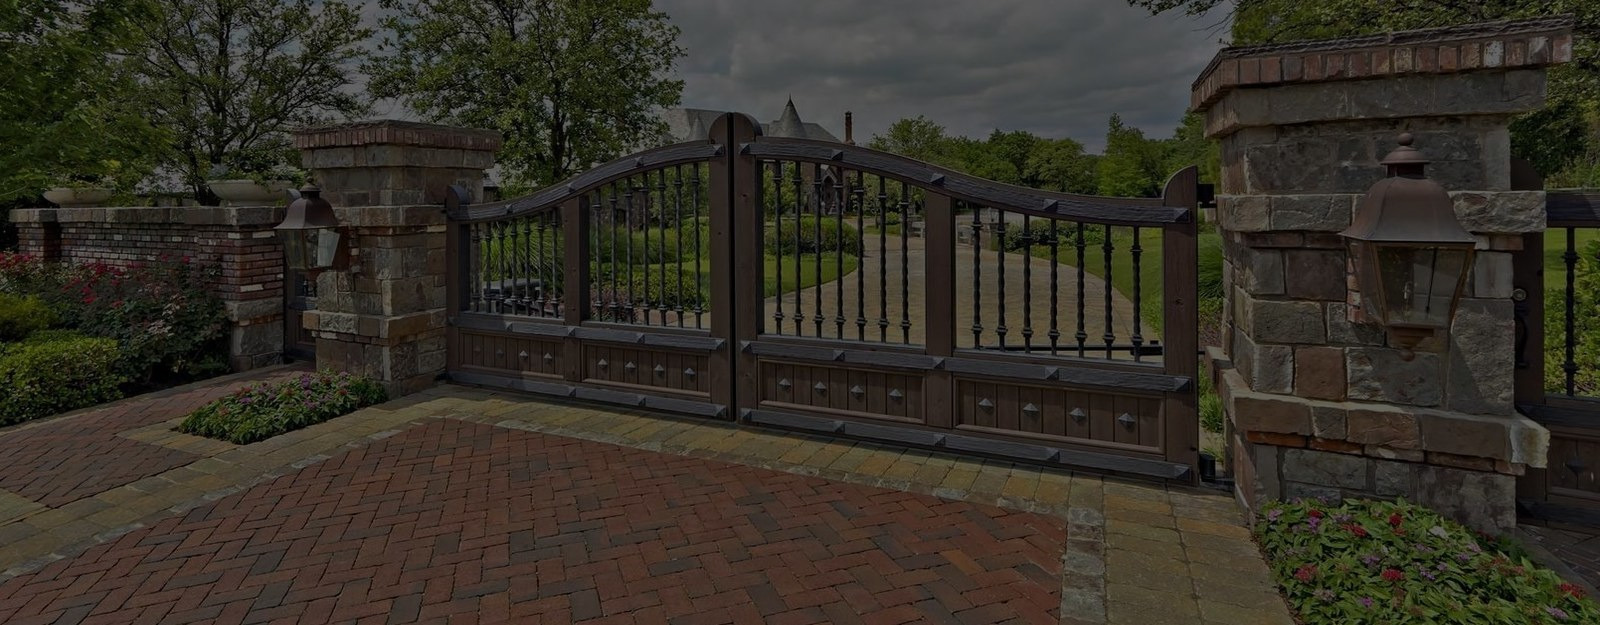 Automatic Gate Repair West Valley City